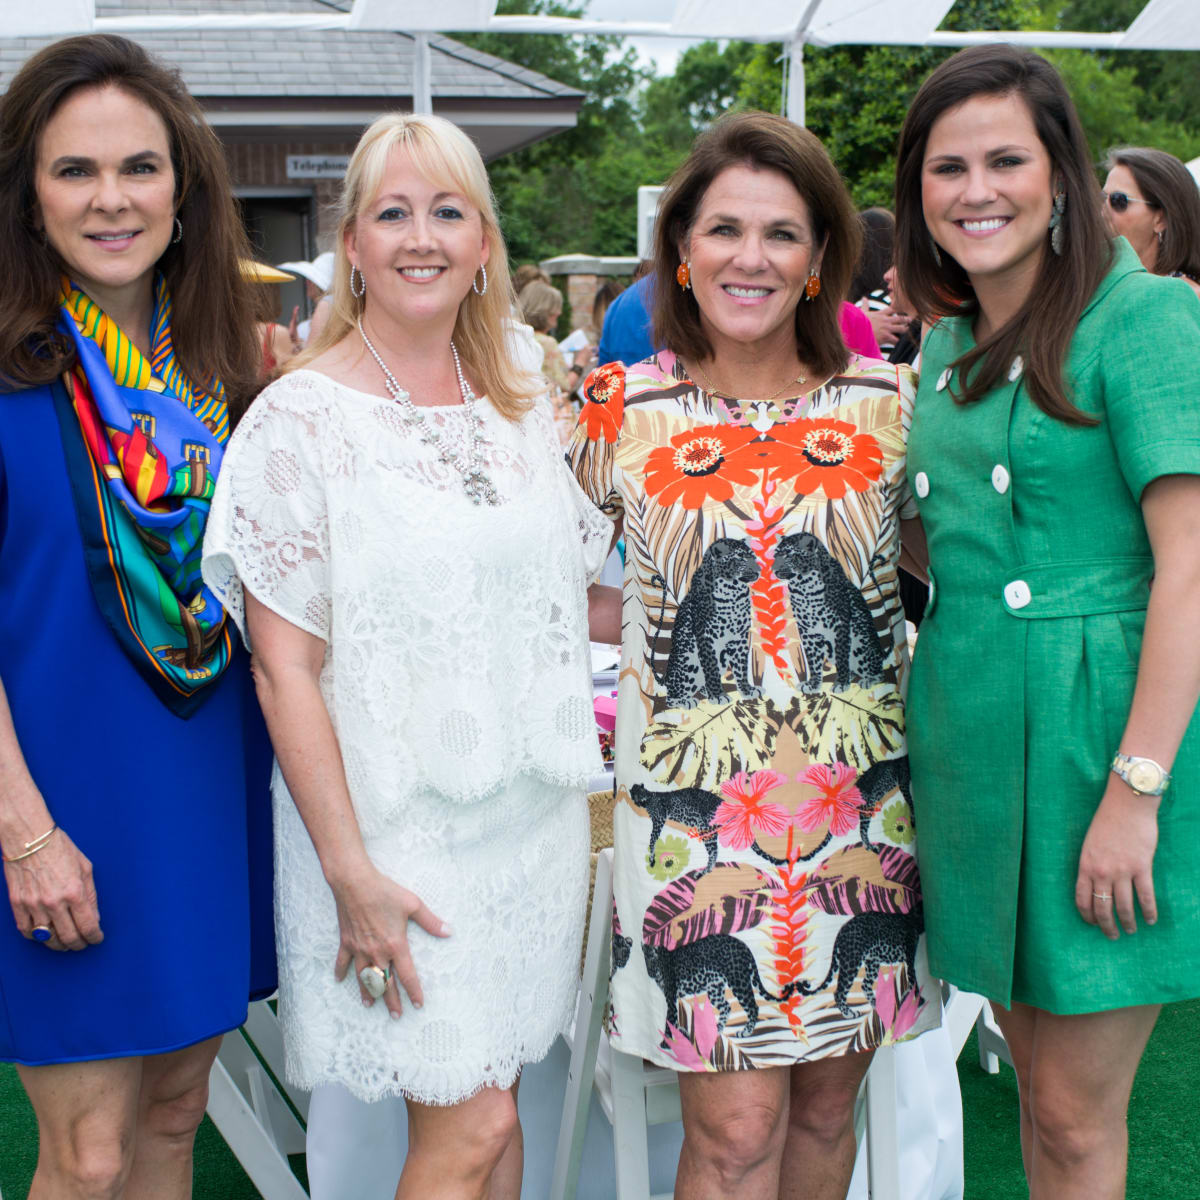 River Oaks Tennis Luncheon, April 2016, Mary Ann Detmering, Courtnay Elias, Bonnie Chumbley, Lila Chumbley